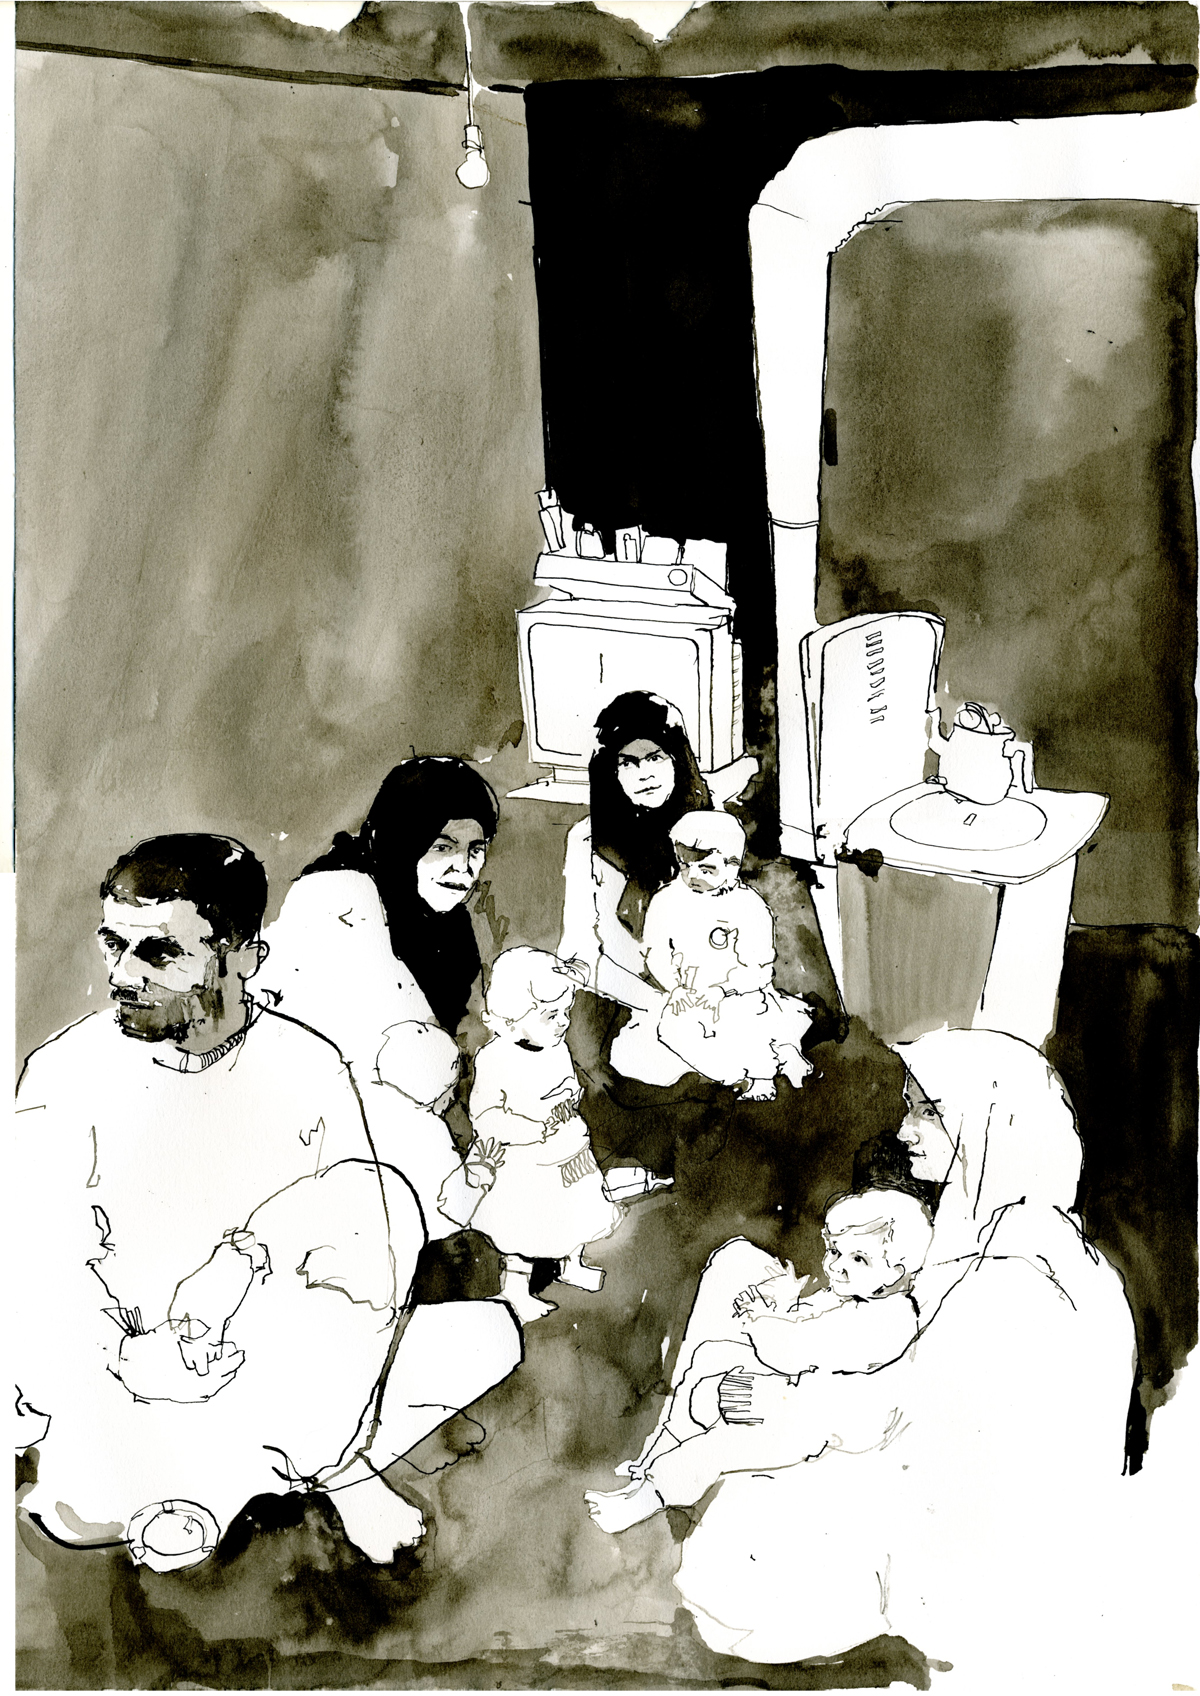 Although they are in Turkey, many Syrian refugees are so scared of the regime that they will not allow their pictures to be taken; even drawing takes some persuading. I felt such compassion for these people, but none more so when they thanked me for drawing them. So generous and so brave.